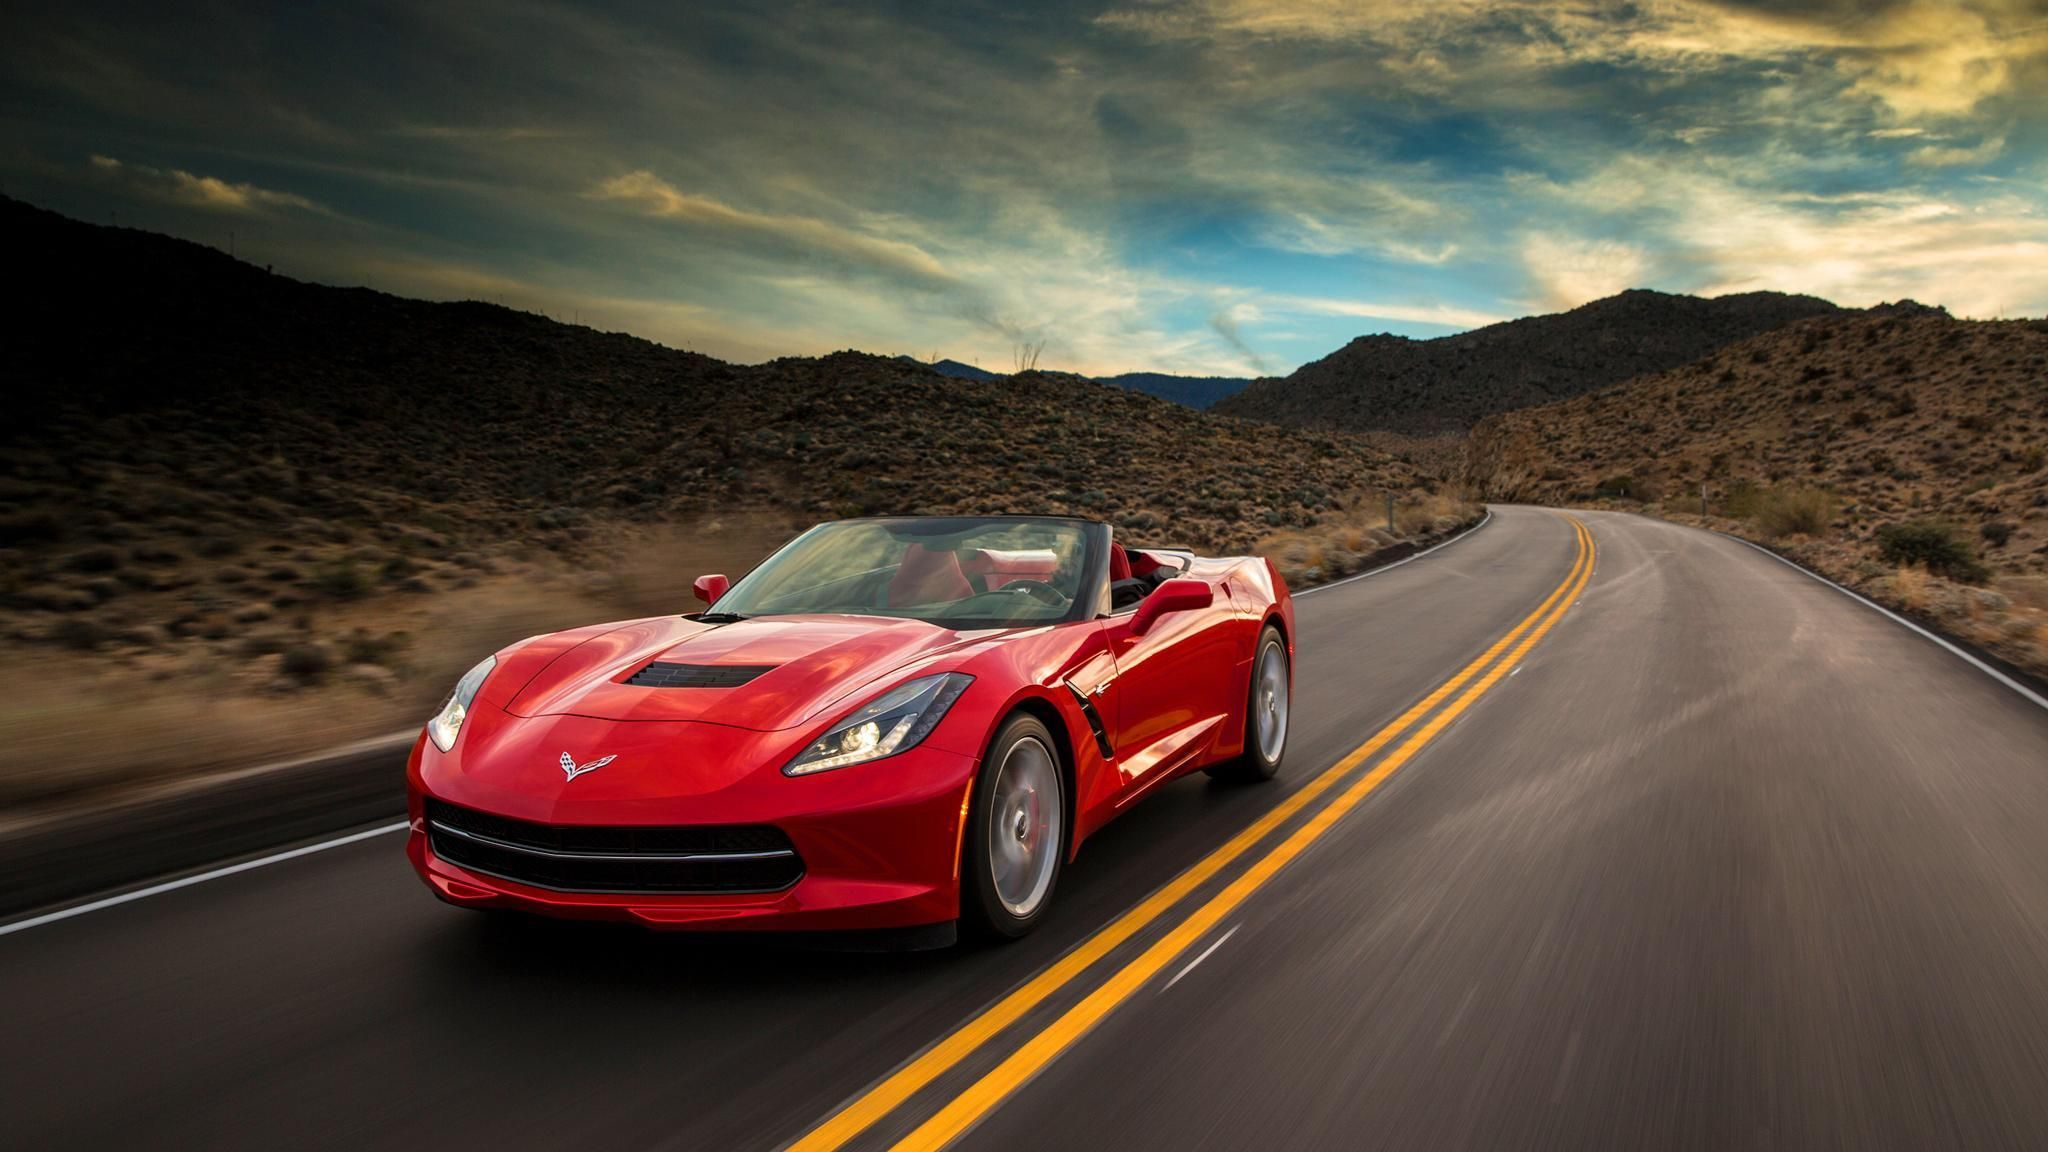 Corvette Stingray 2015 Wallpapers Hd Wallpaper Cave Wallpaper